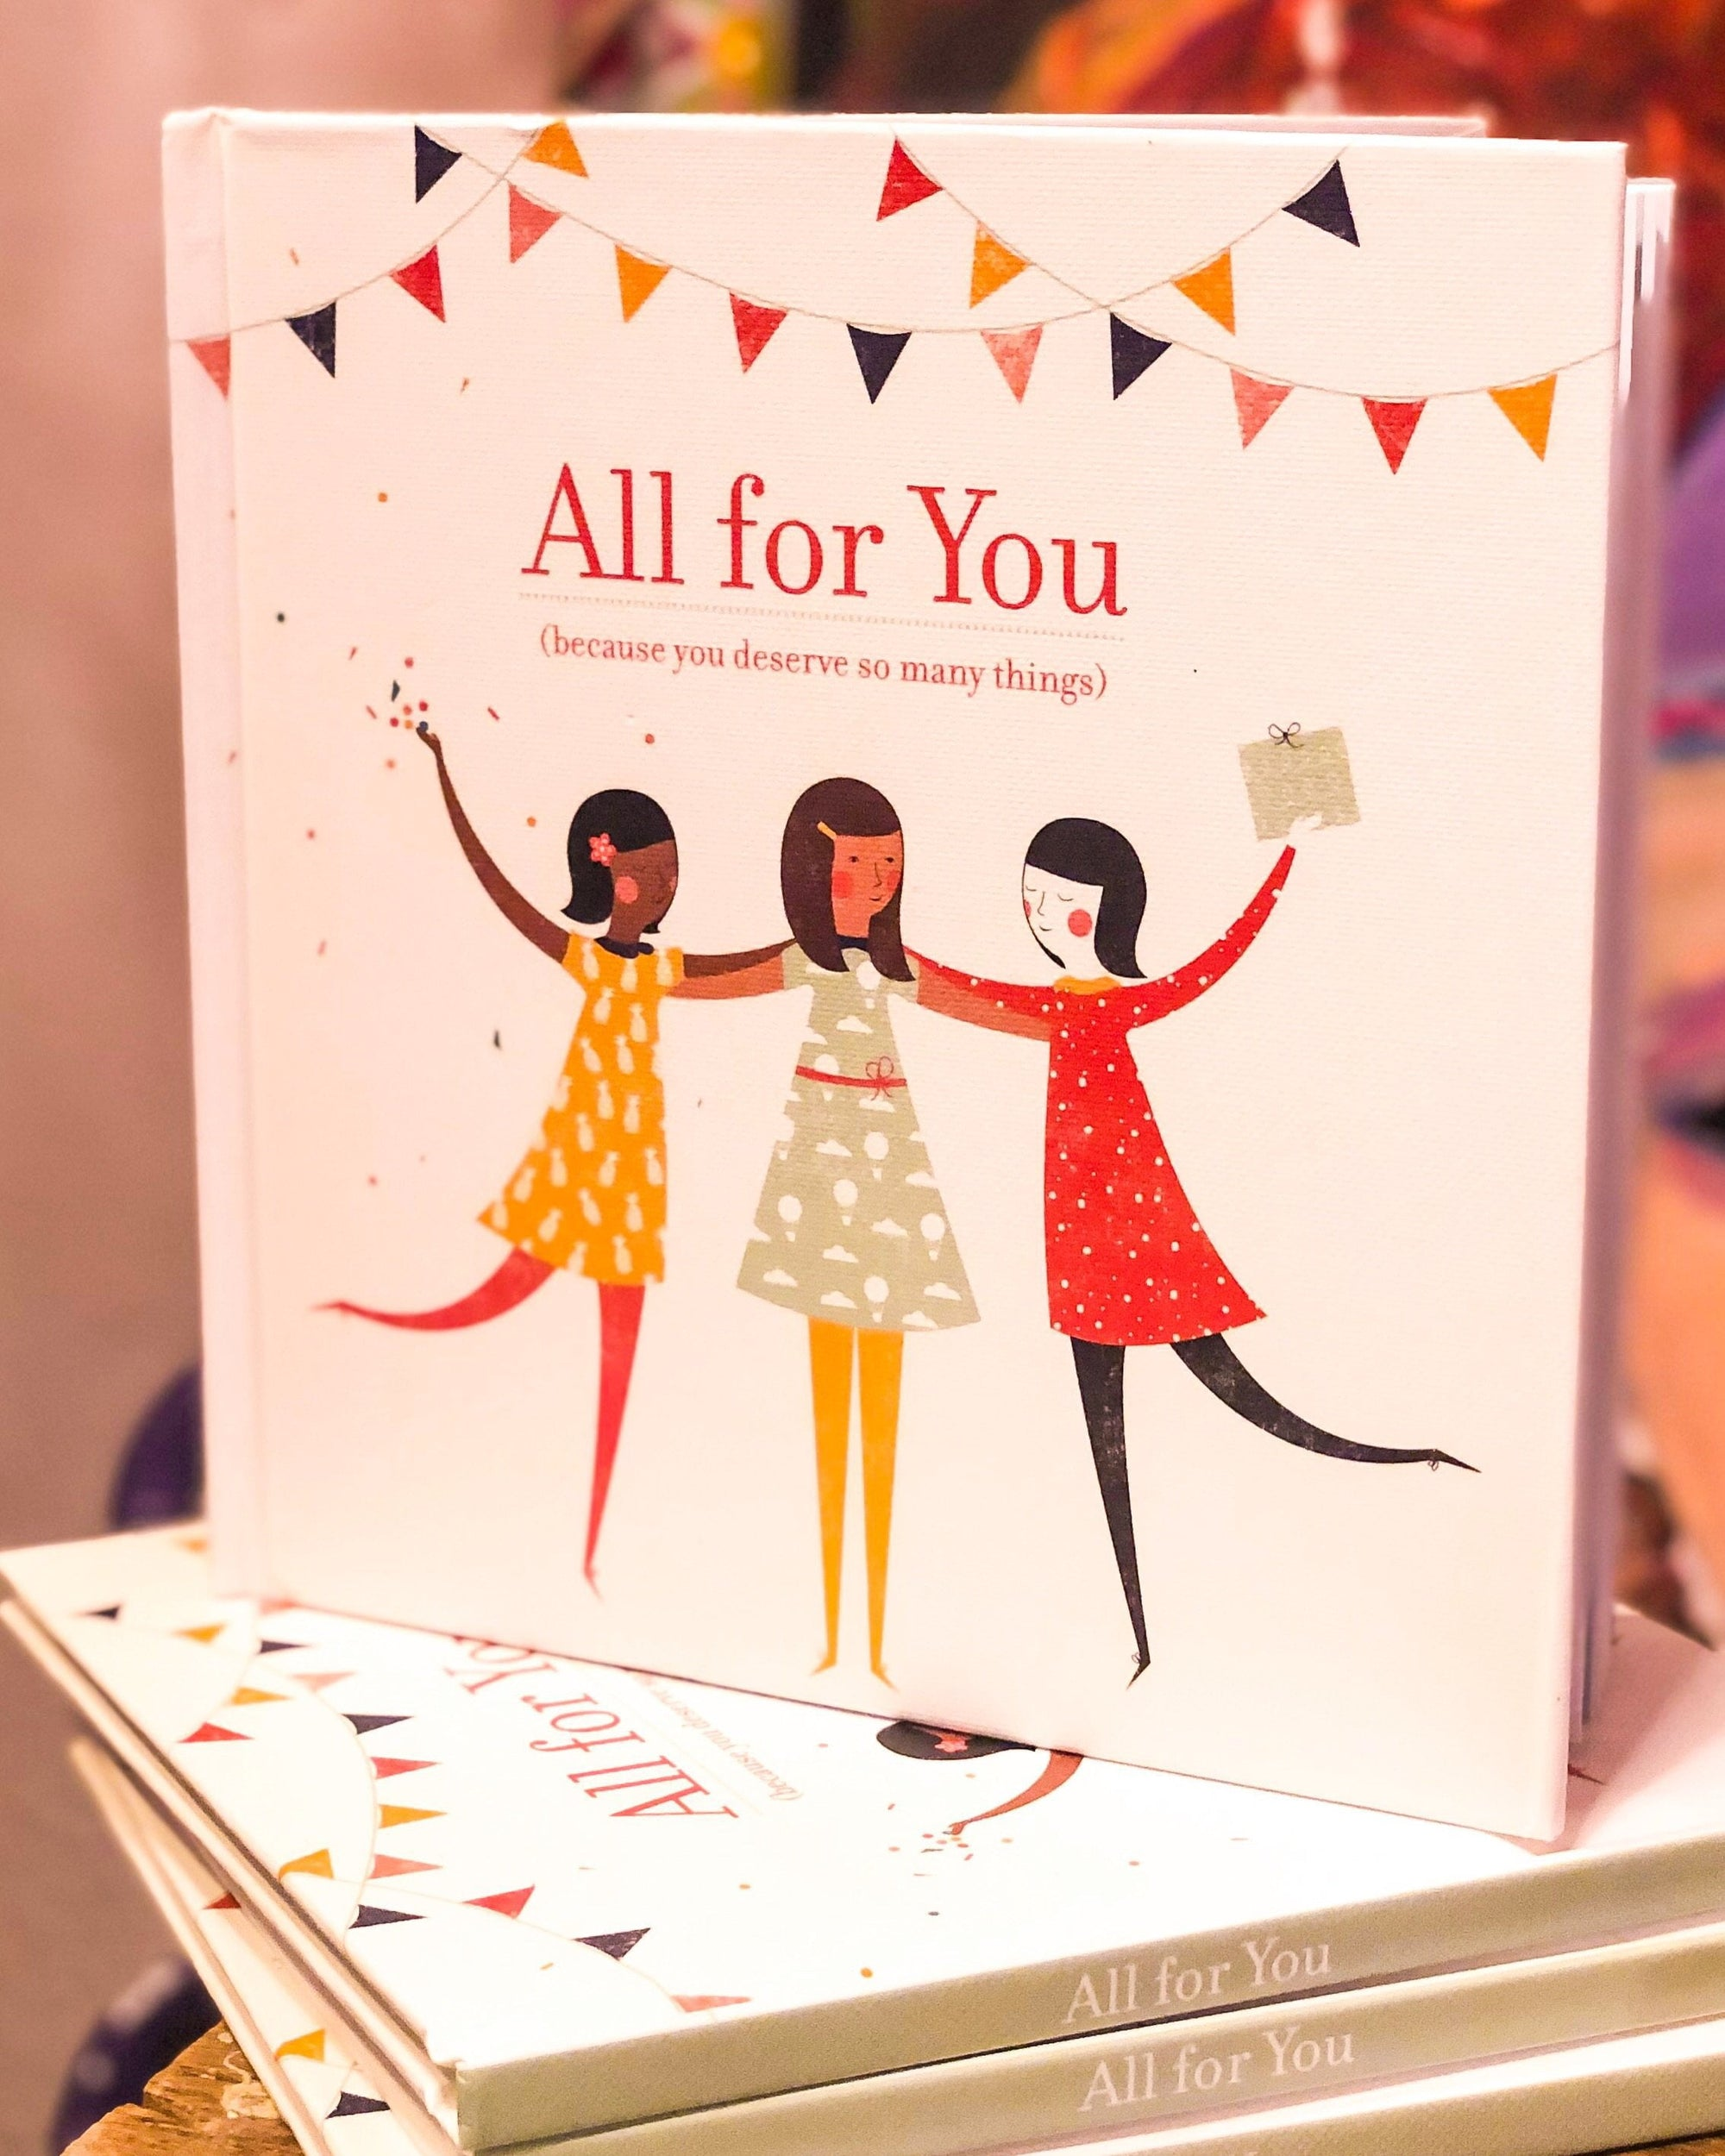 Buy All For You, An Inspirational Gift Book from Walking Pants Curiosities, the Most un-General Gift Store in Downtown Memphis, Tennessee!